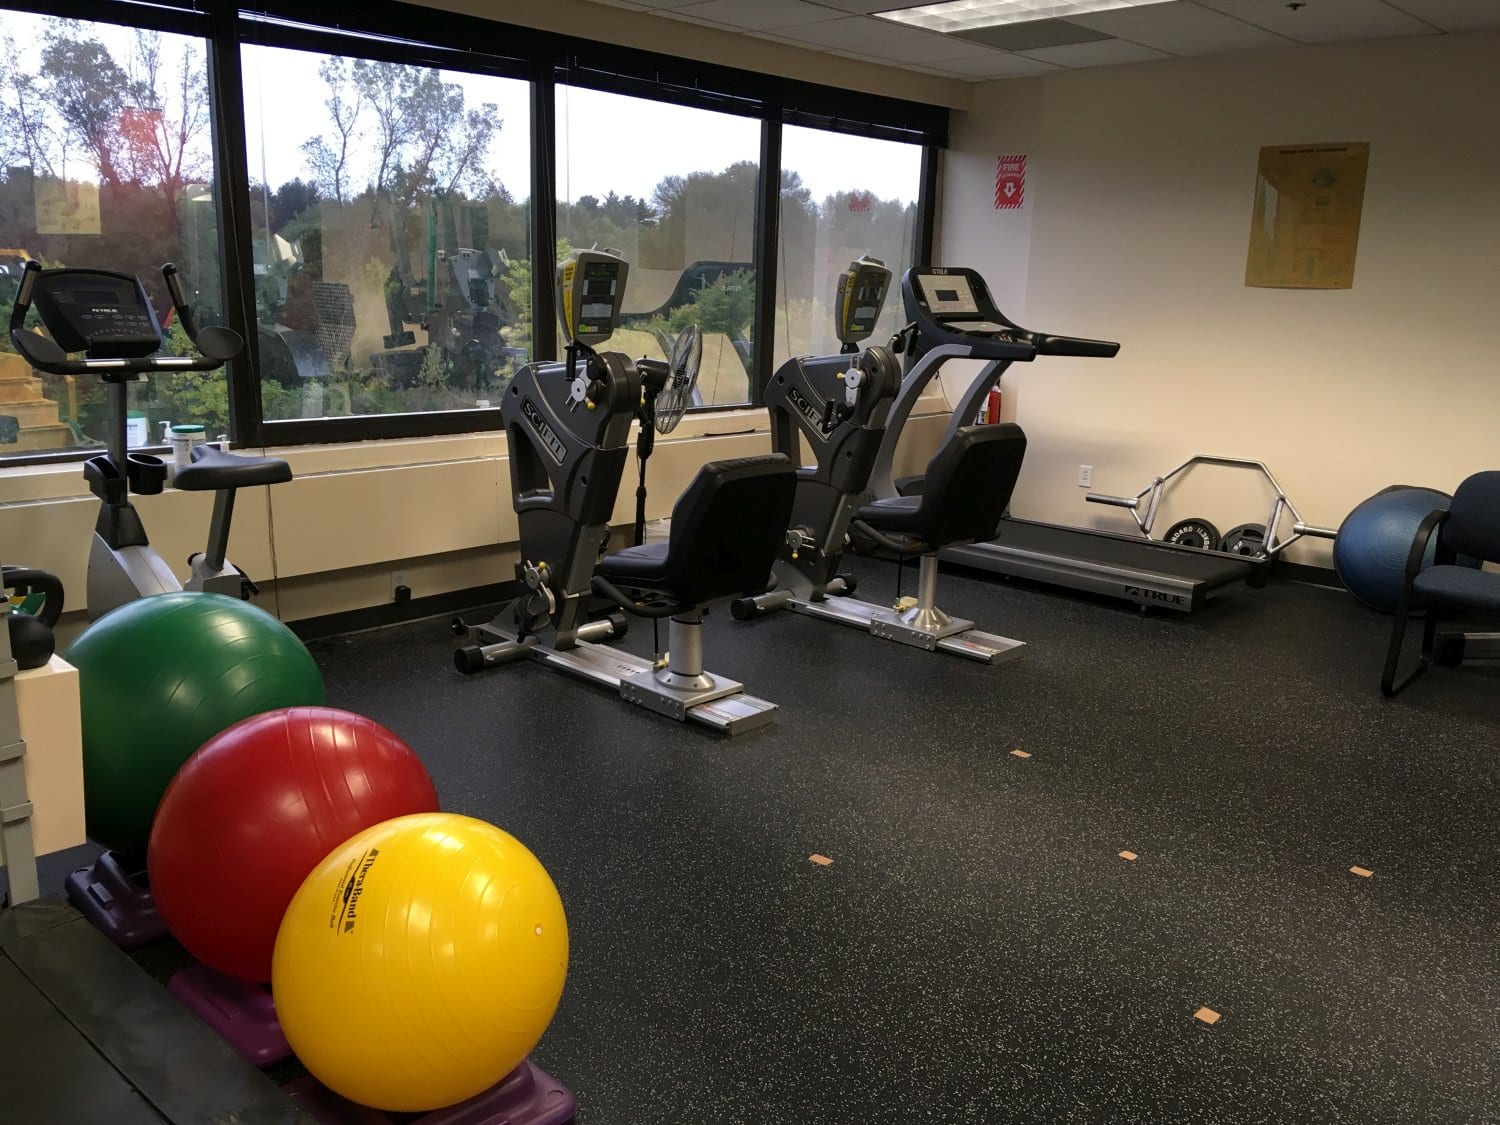 This is an image of two exercise machines and three workout balls used at our physical therapy clinic in Oradell, New Jersey. These balls are great for improving balance and flexibility.